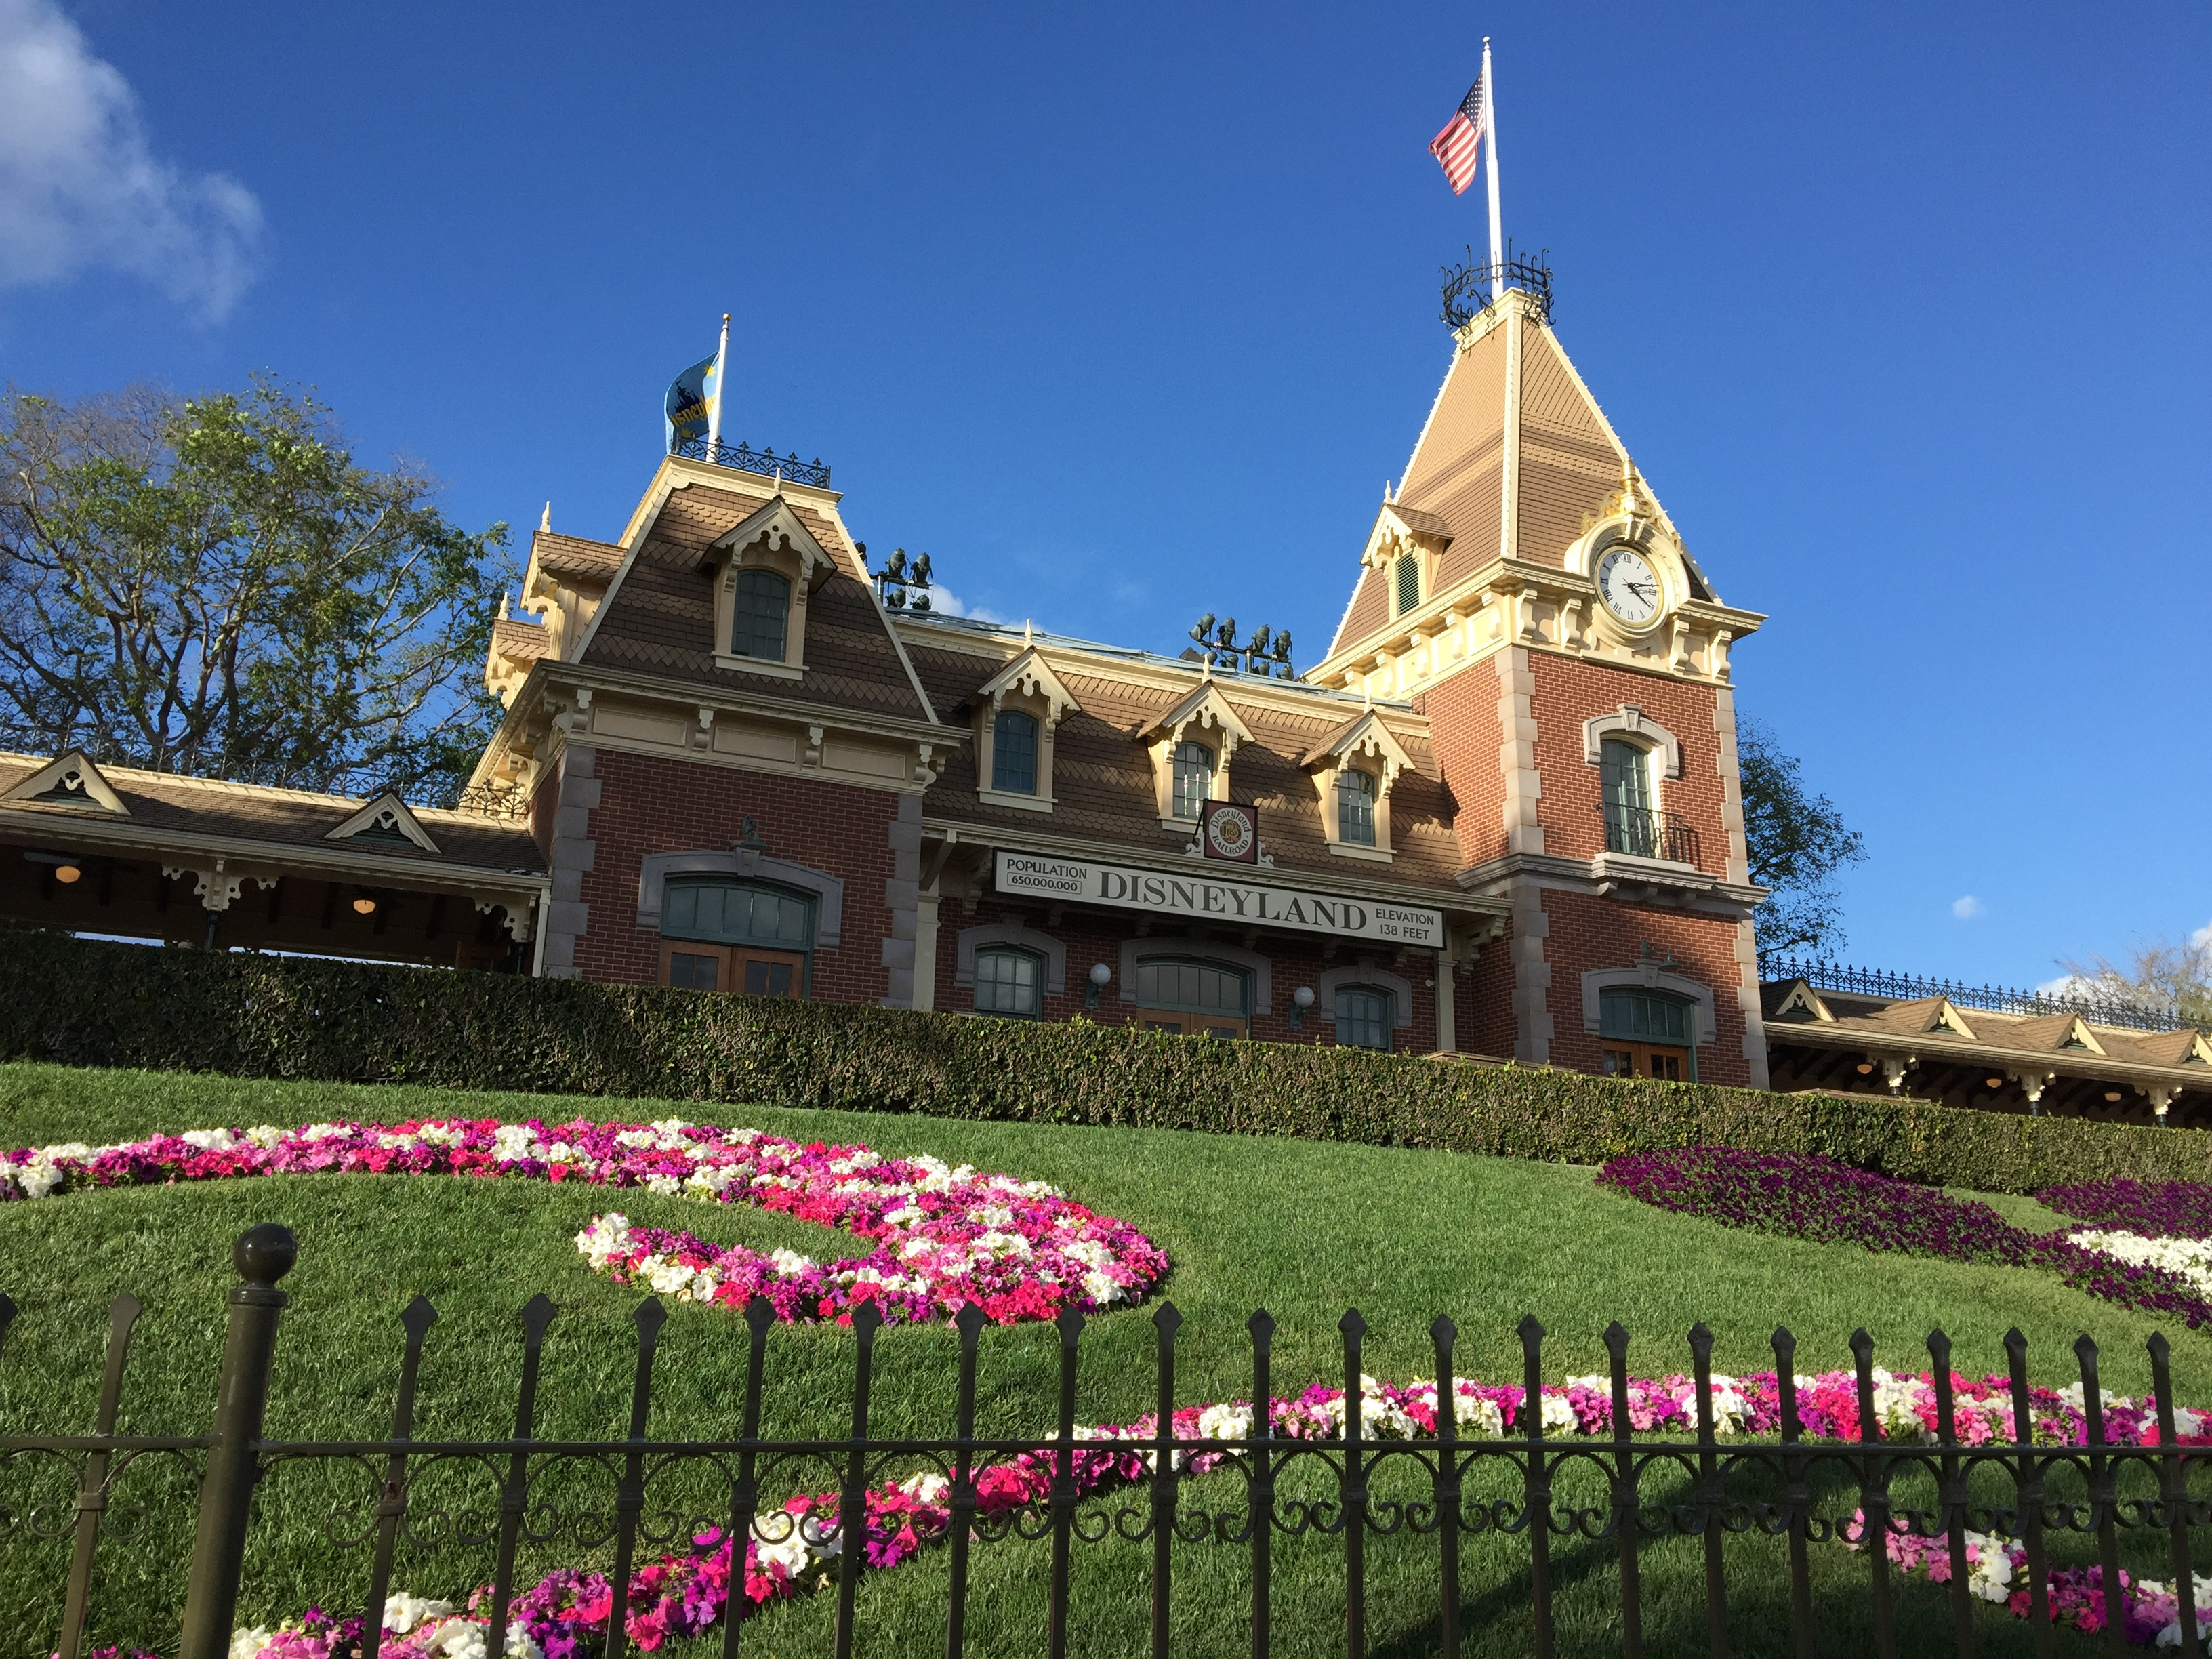 Is A Disneyland Annual Pass Right For Me?